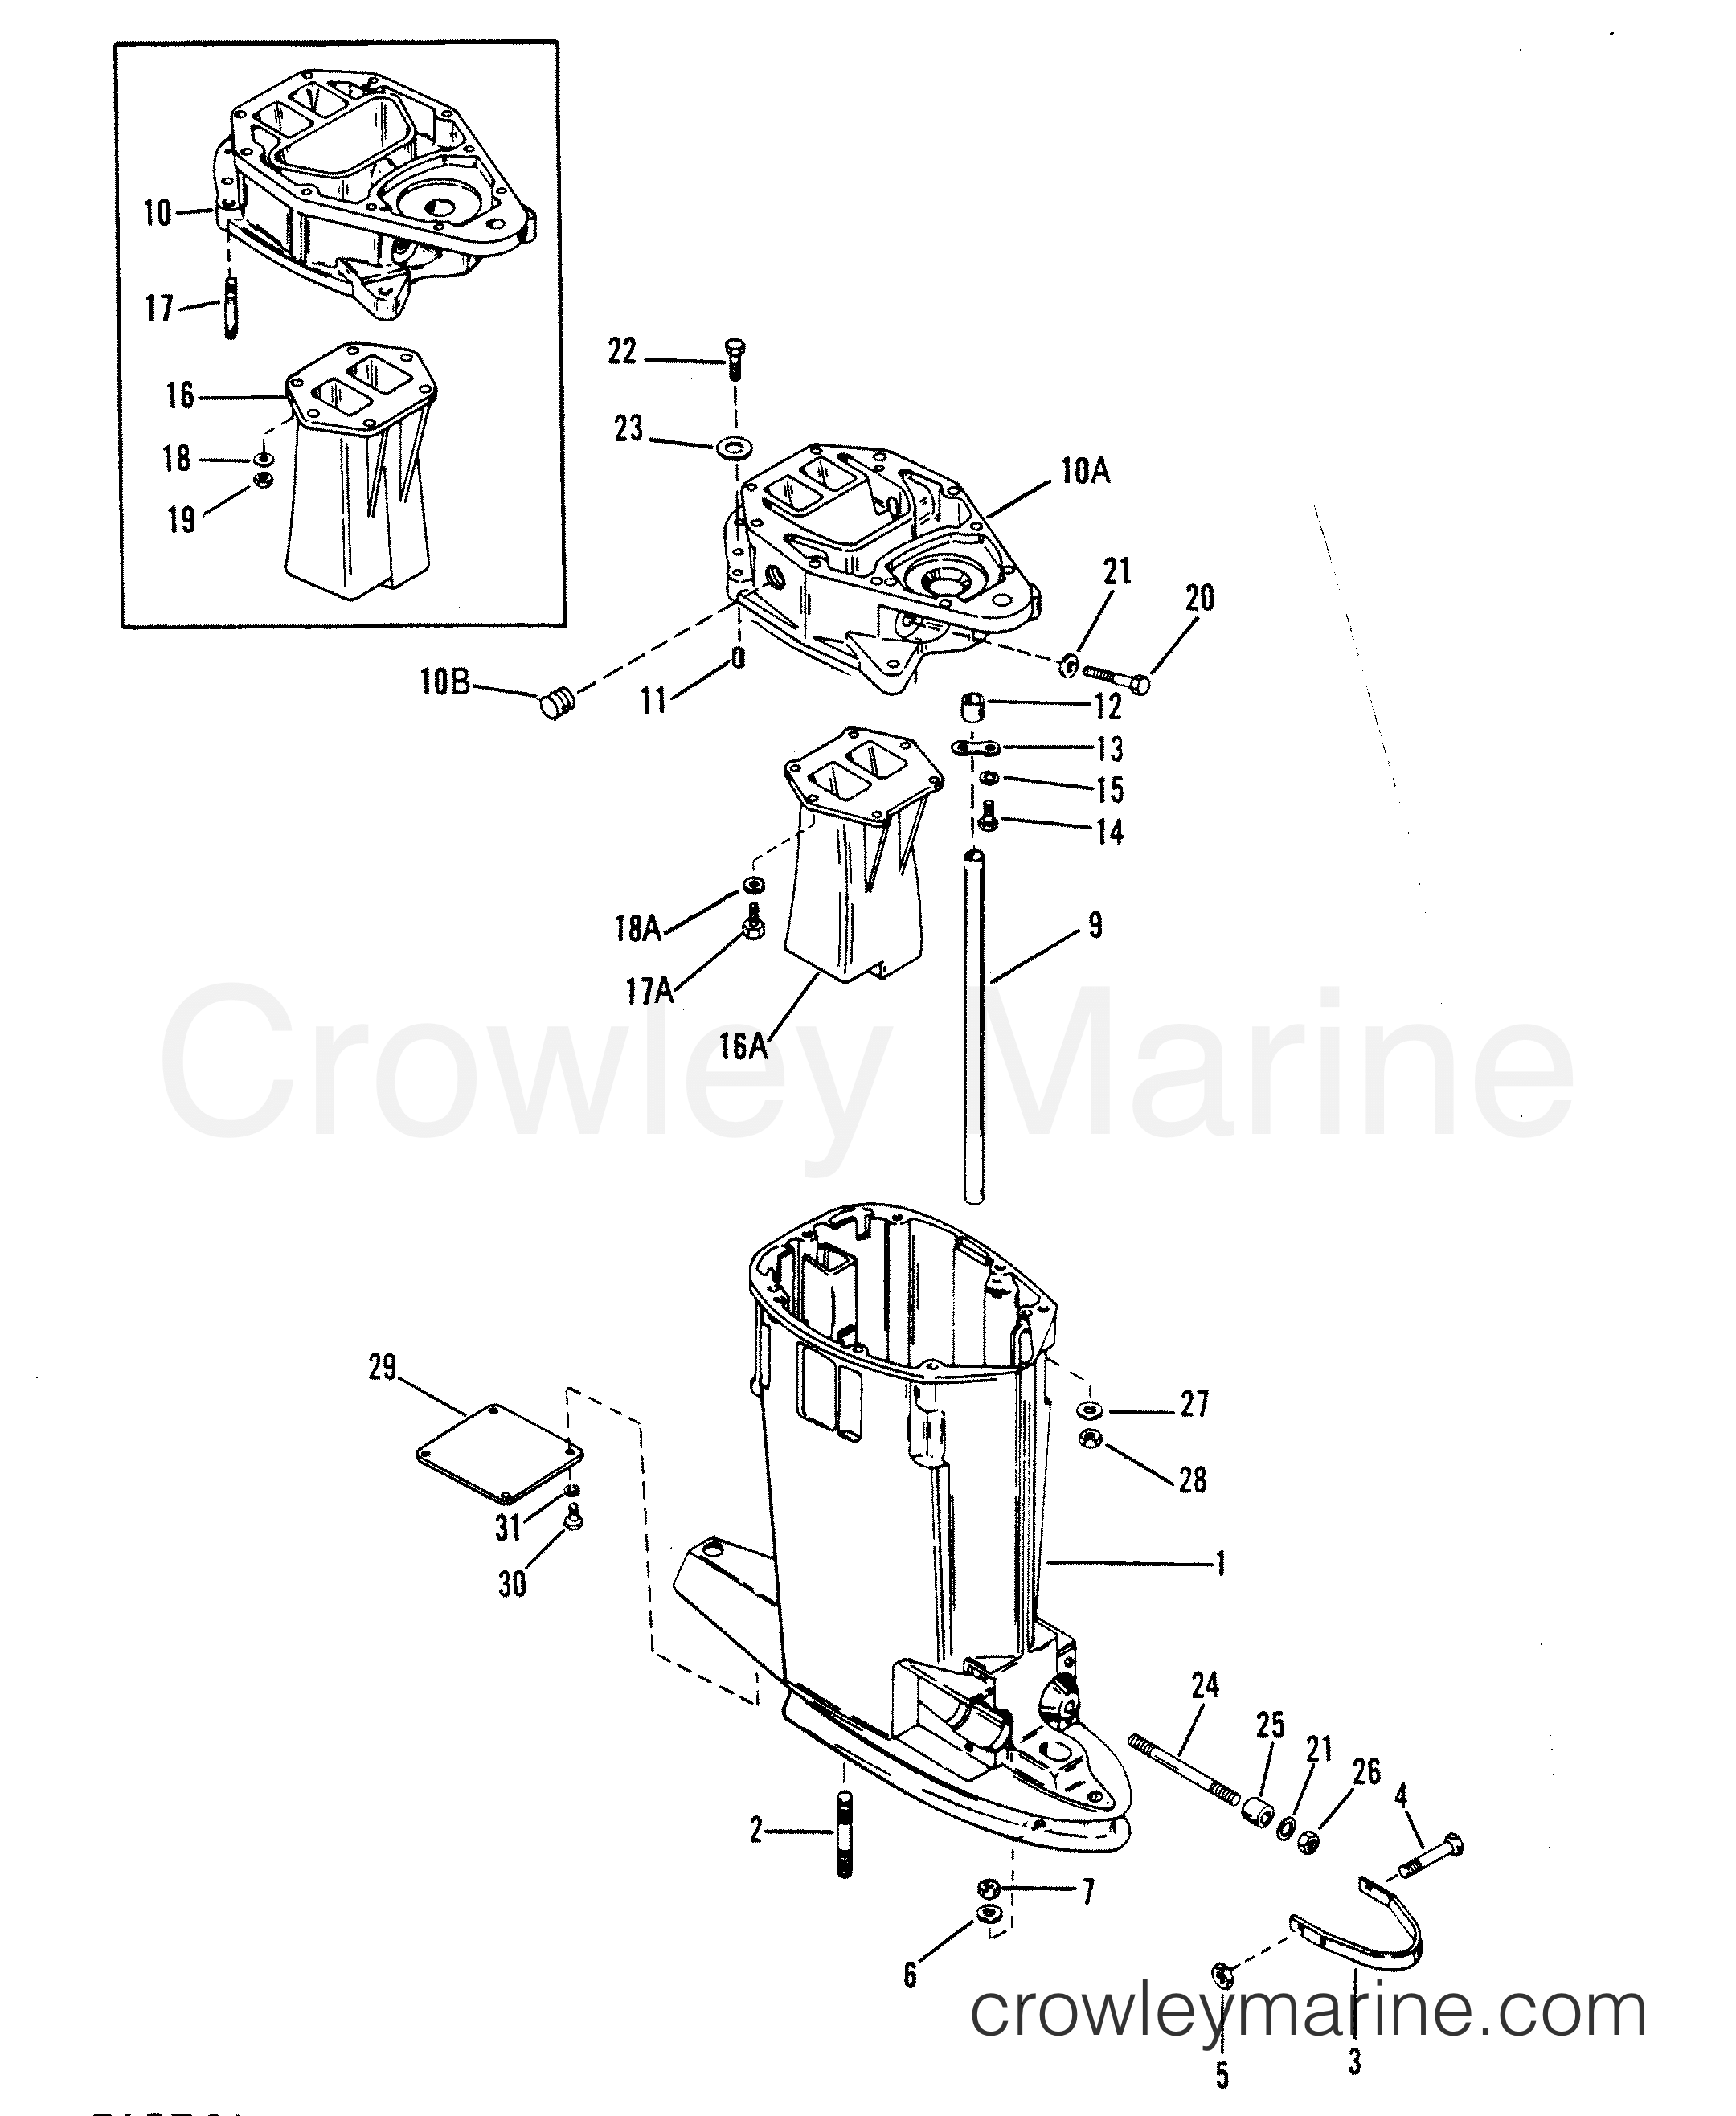 1991 Mercury Race Outboard 2.5L [CL EFI] - 7925212YH - DRIVE SHAFT HOUSING (OFFSHORE) section